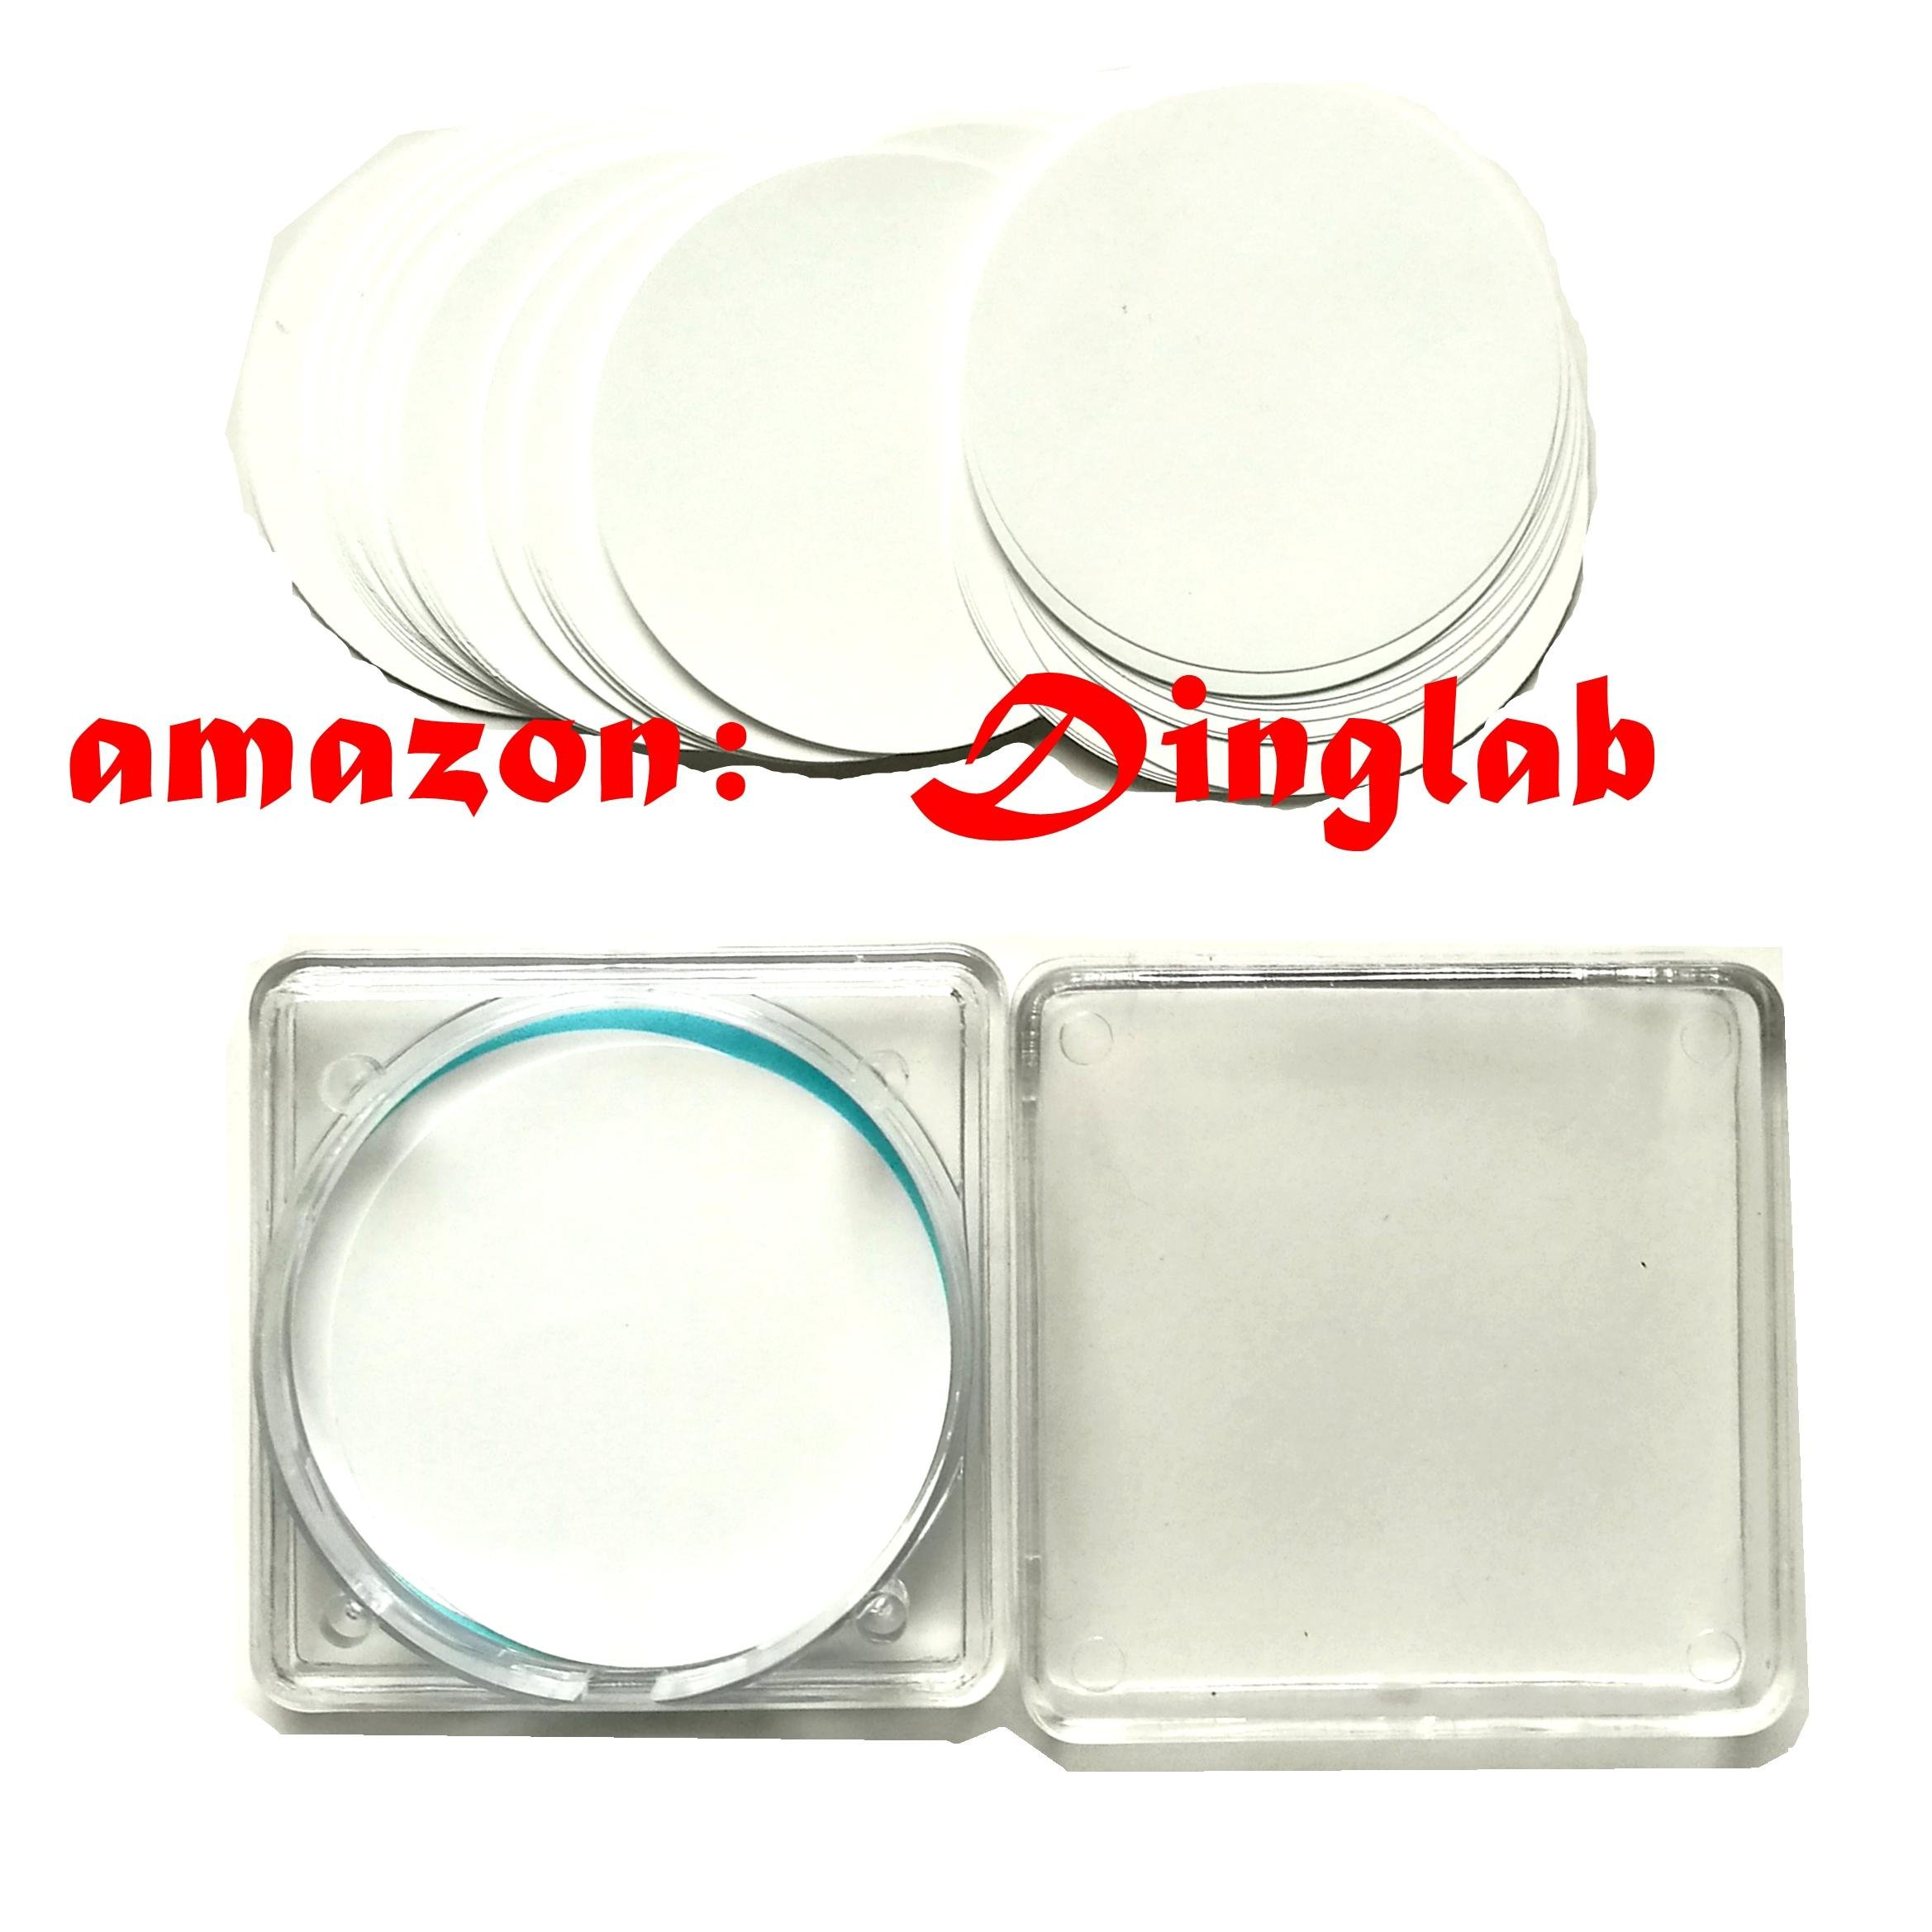 Dinglab,47mm,1.0um,PES Membrane Filter,Made by Polyethersulfone,50 Sheet/Pack by dinglab